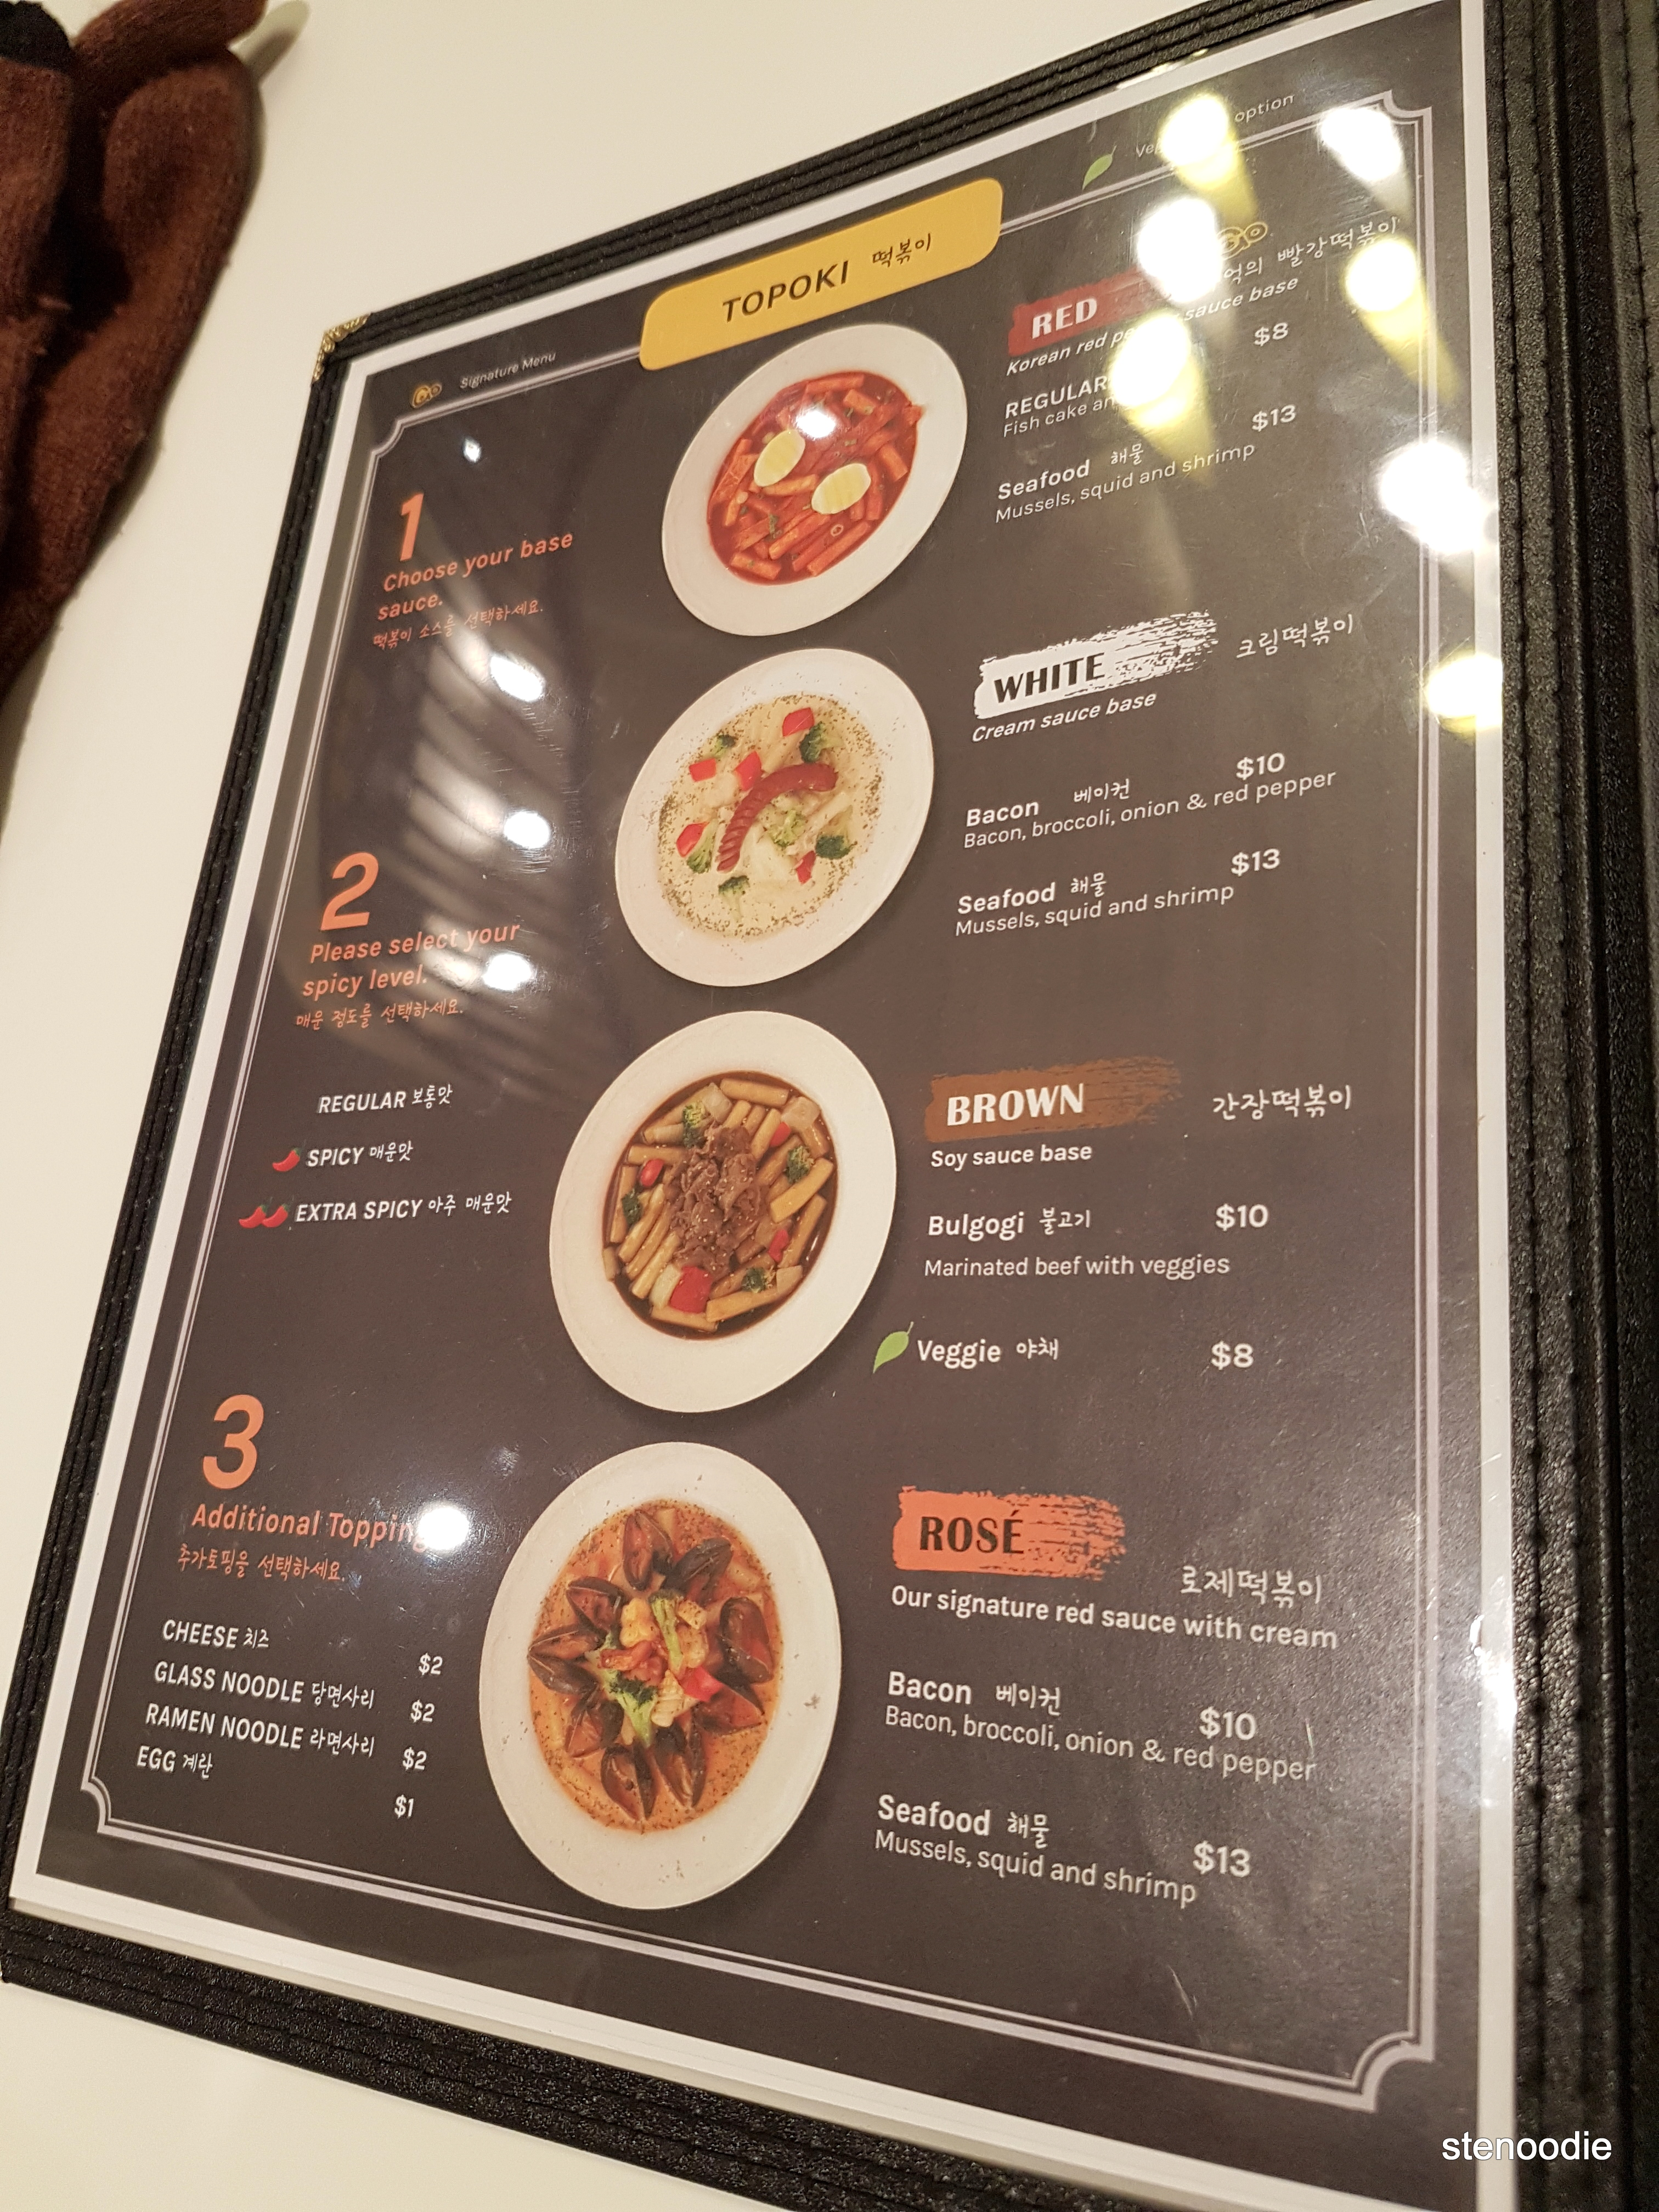 Go Topoki menu and prices